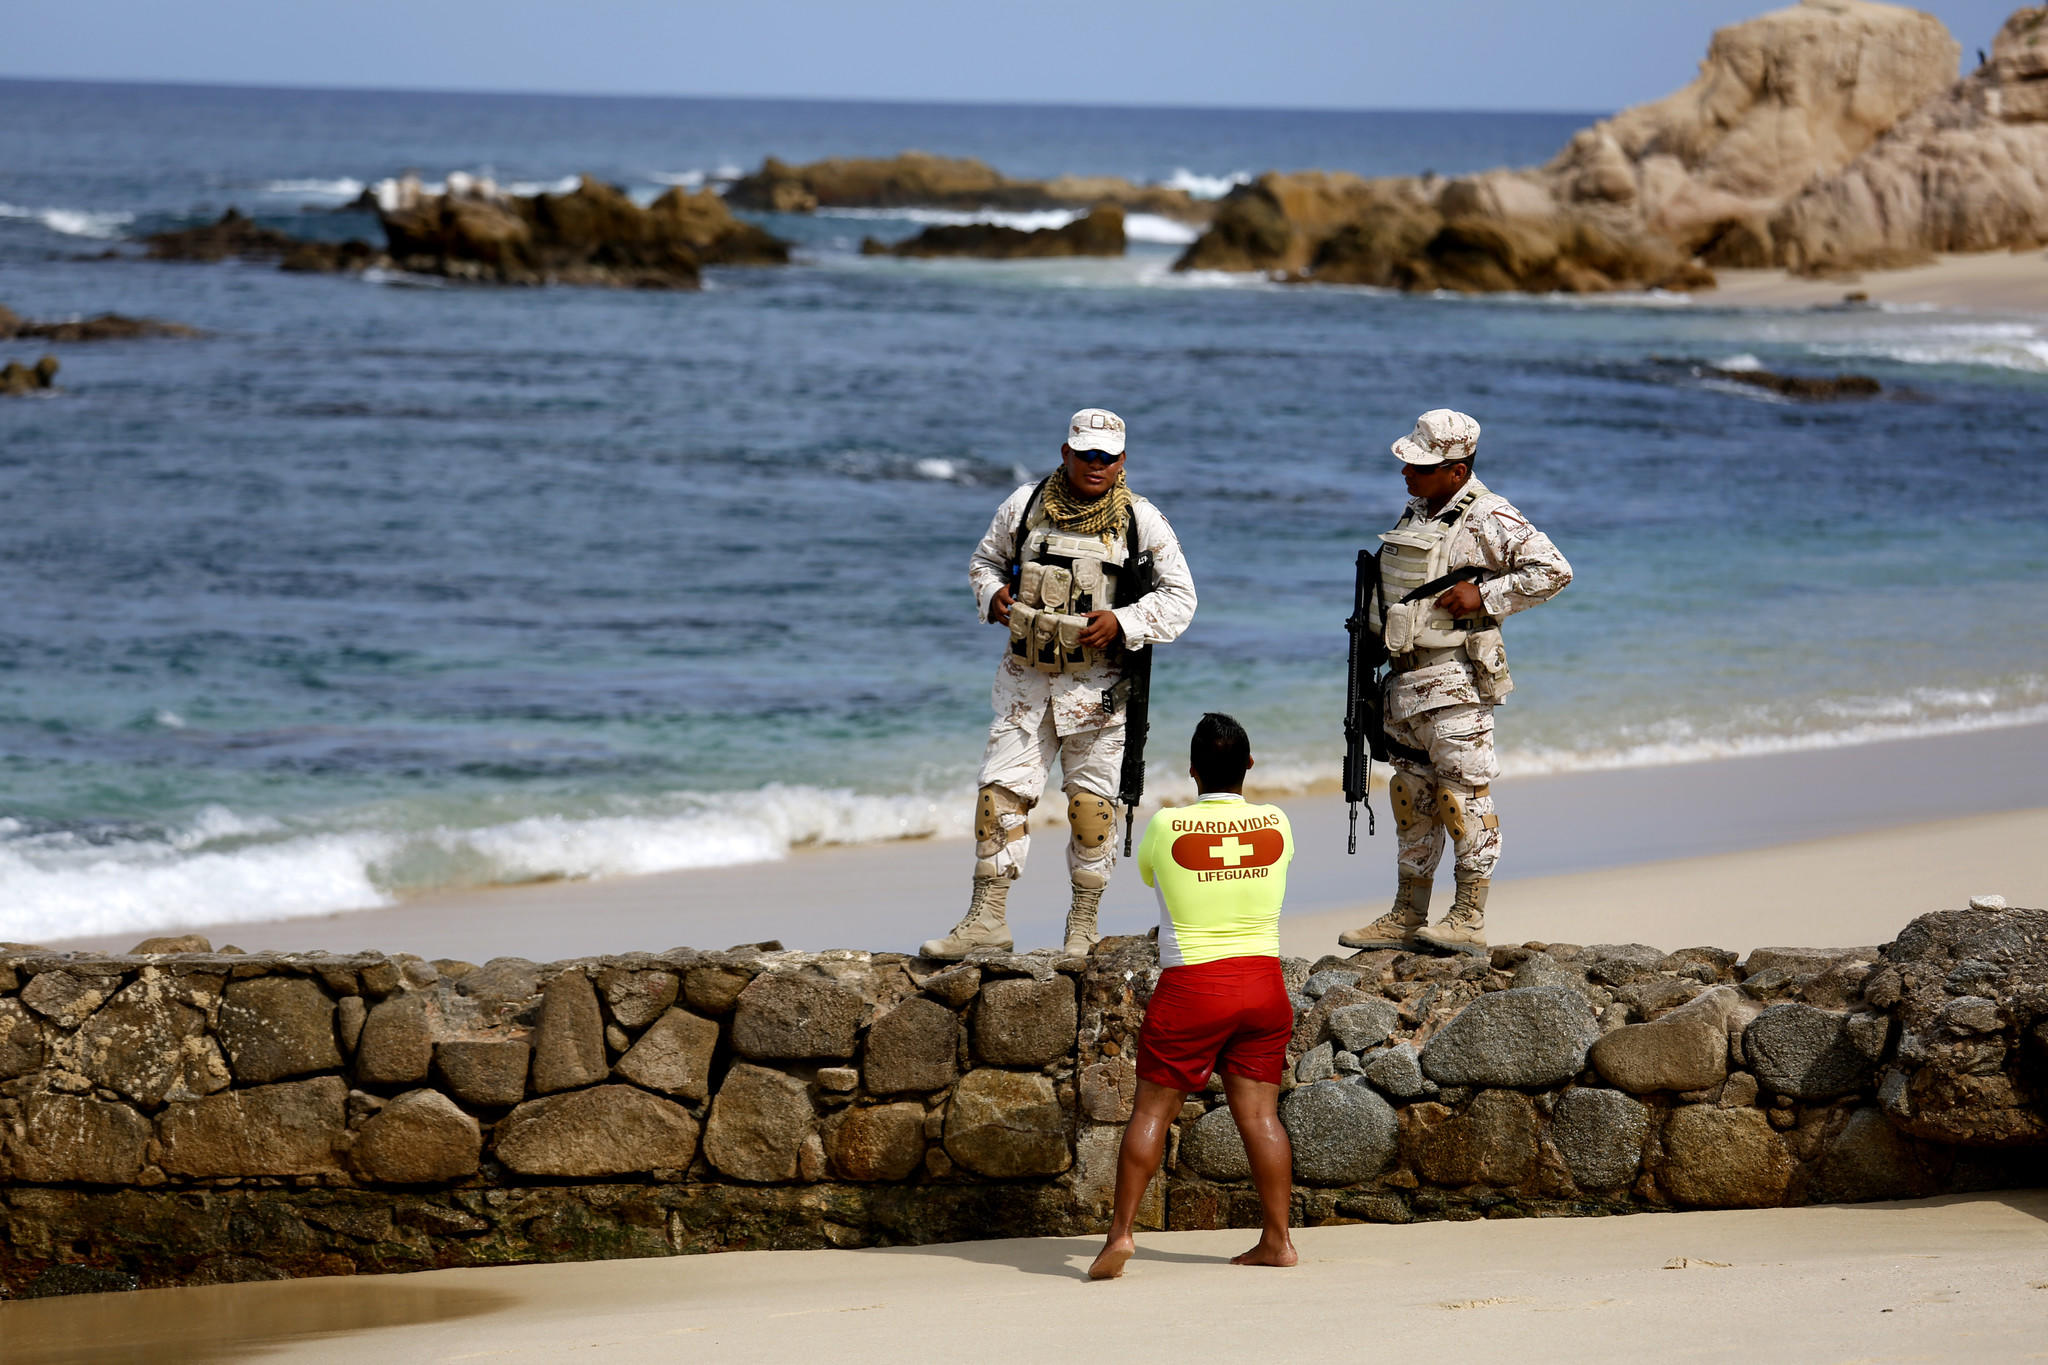 Los Cabos is no longer a haven from Mexico's bloodshed - Los Angeles Times